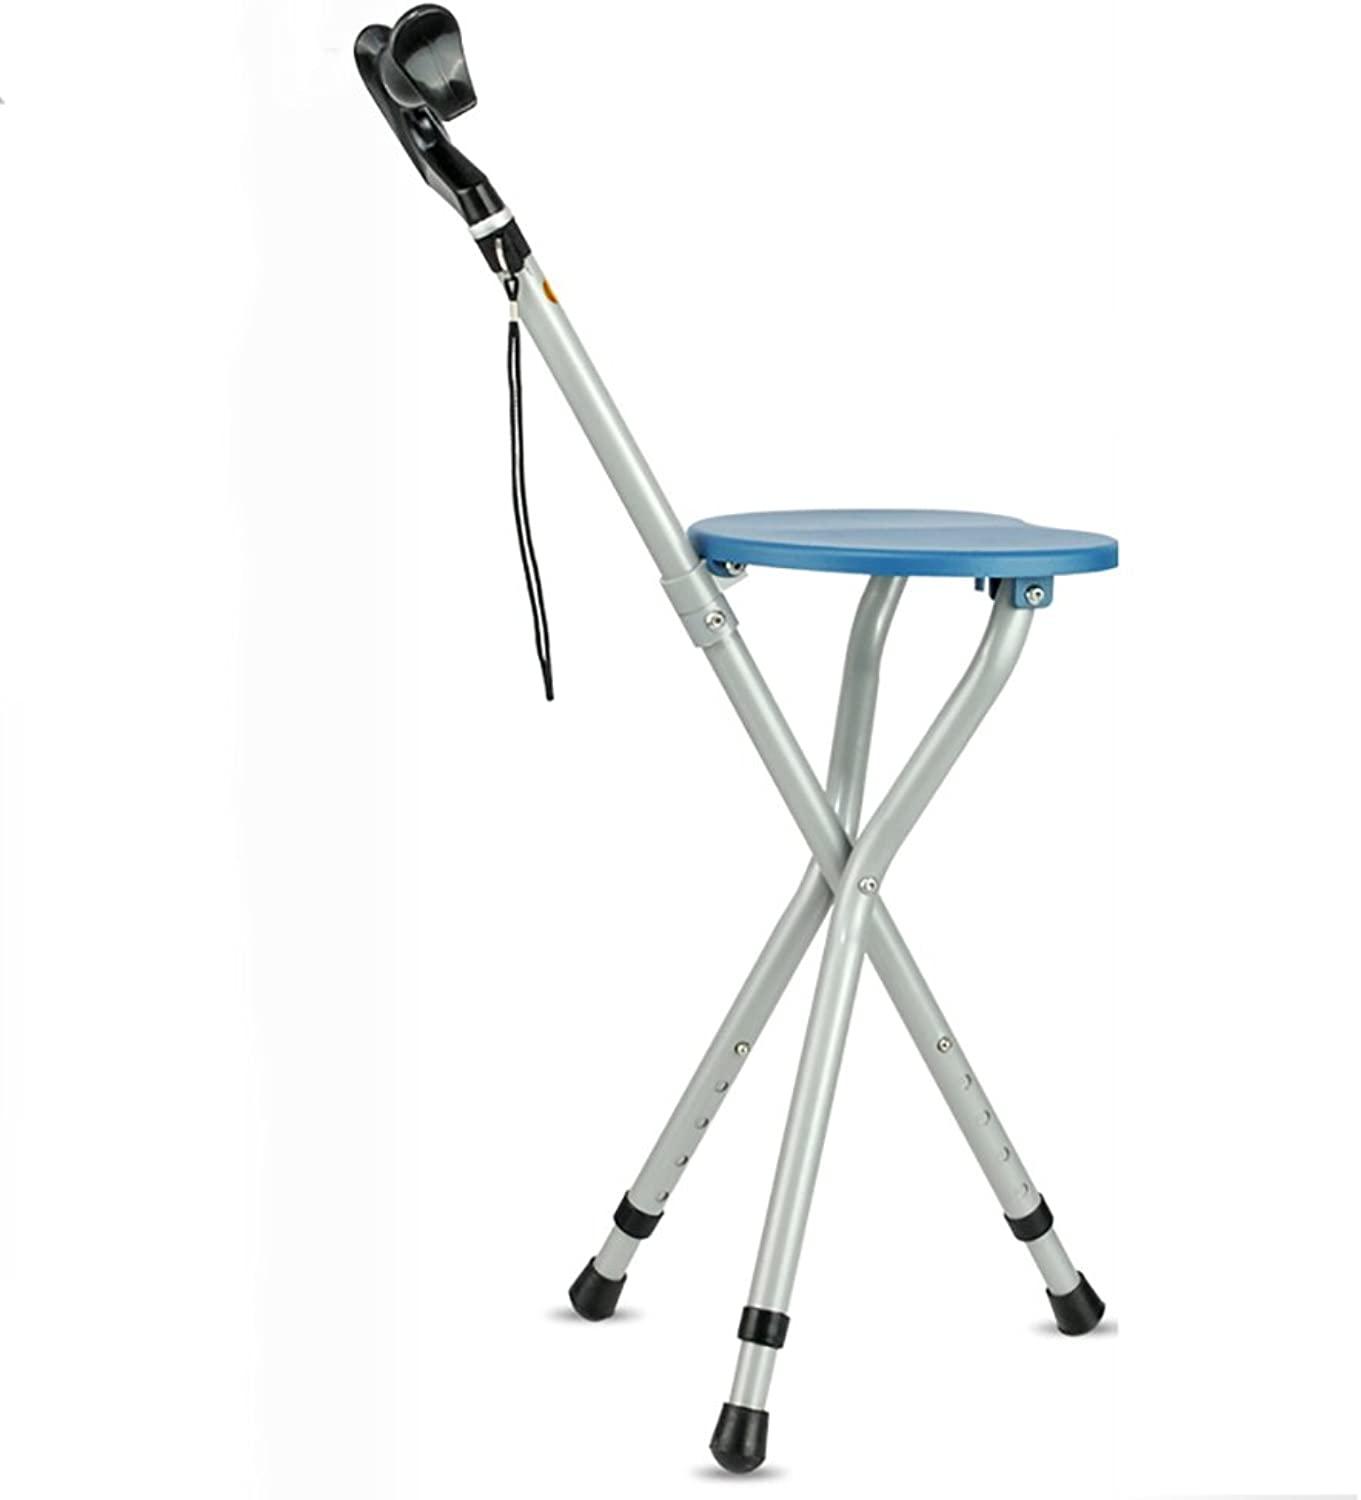 ZZHF dengzi Old Man Crutches Stool Three-Legged Collapsible Walker Creative Cane Stool (2 colors Optional) (color   bluee)